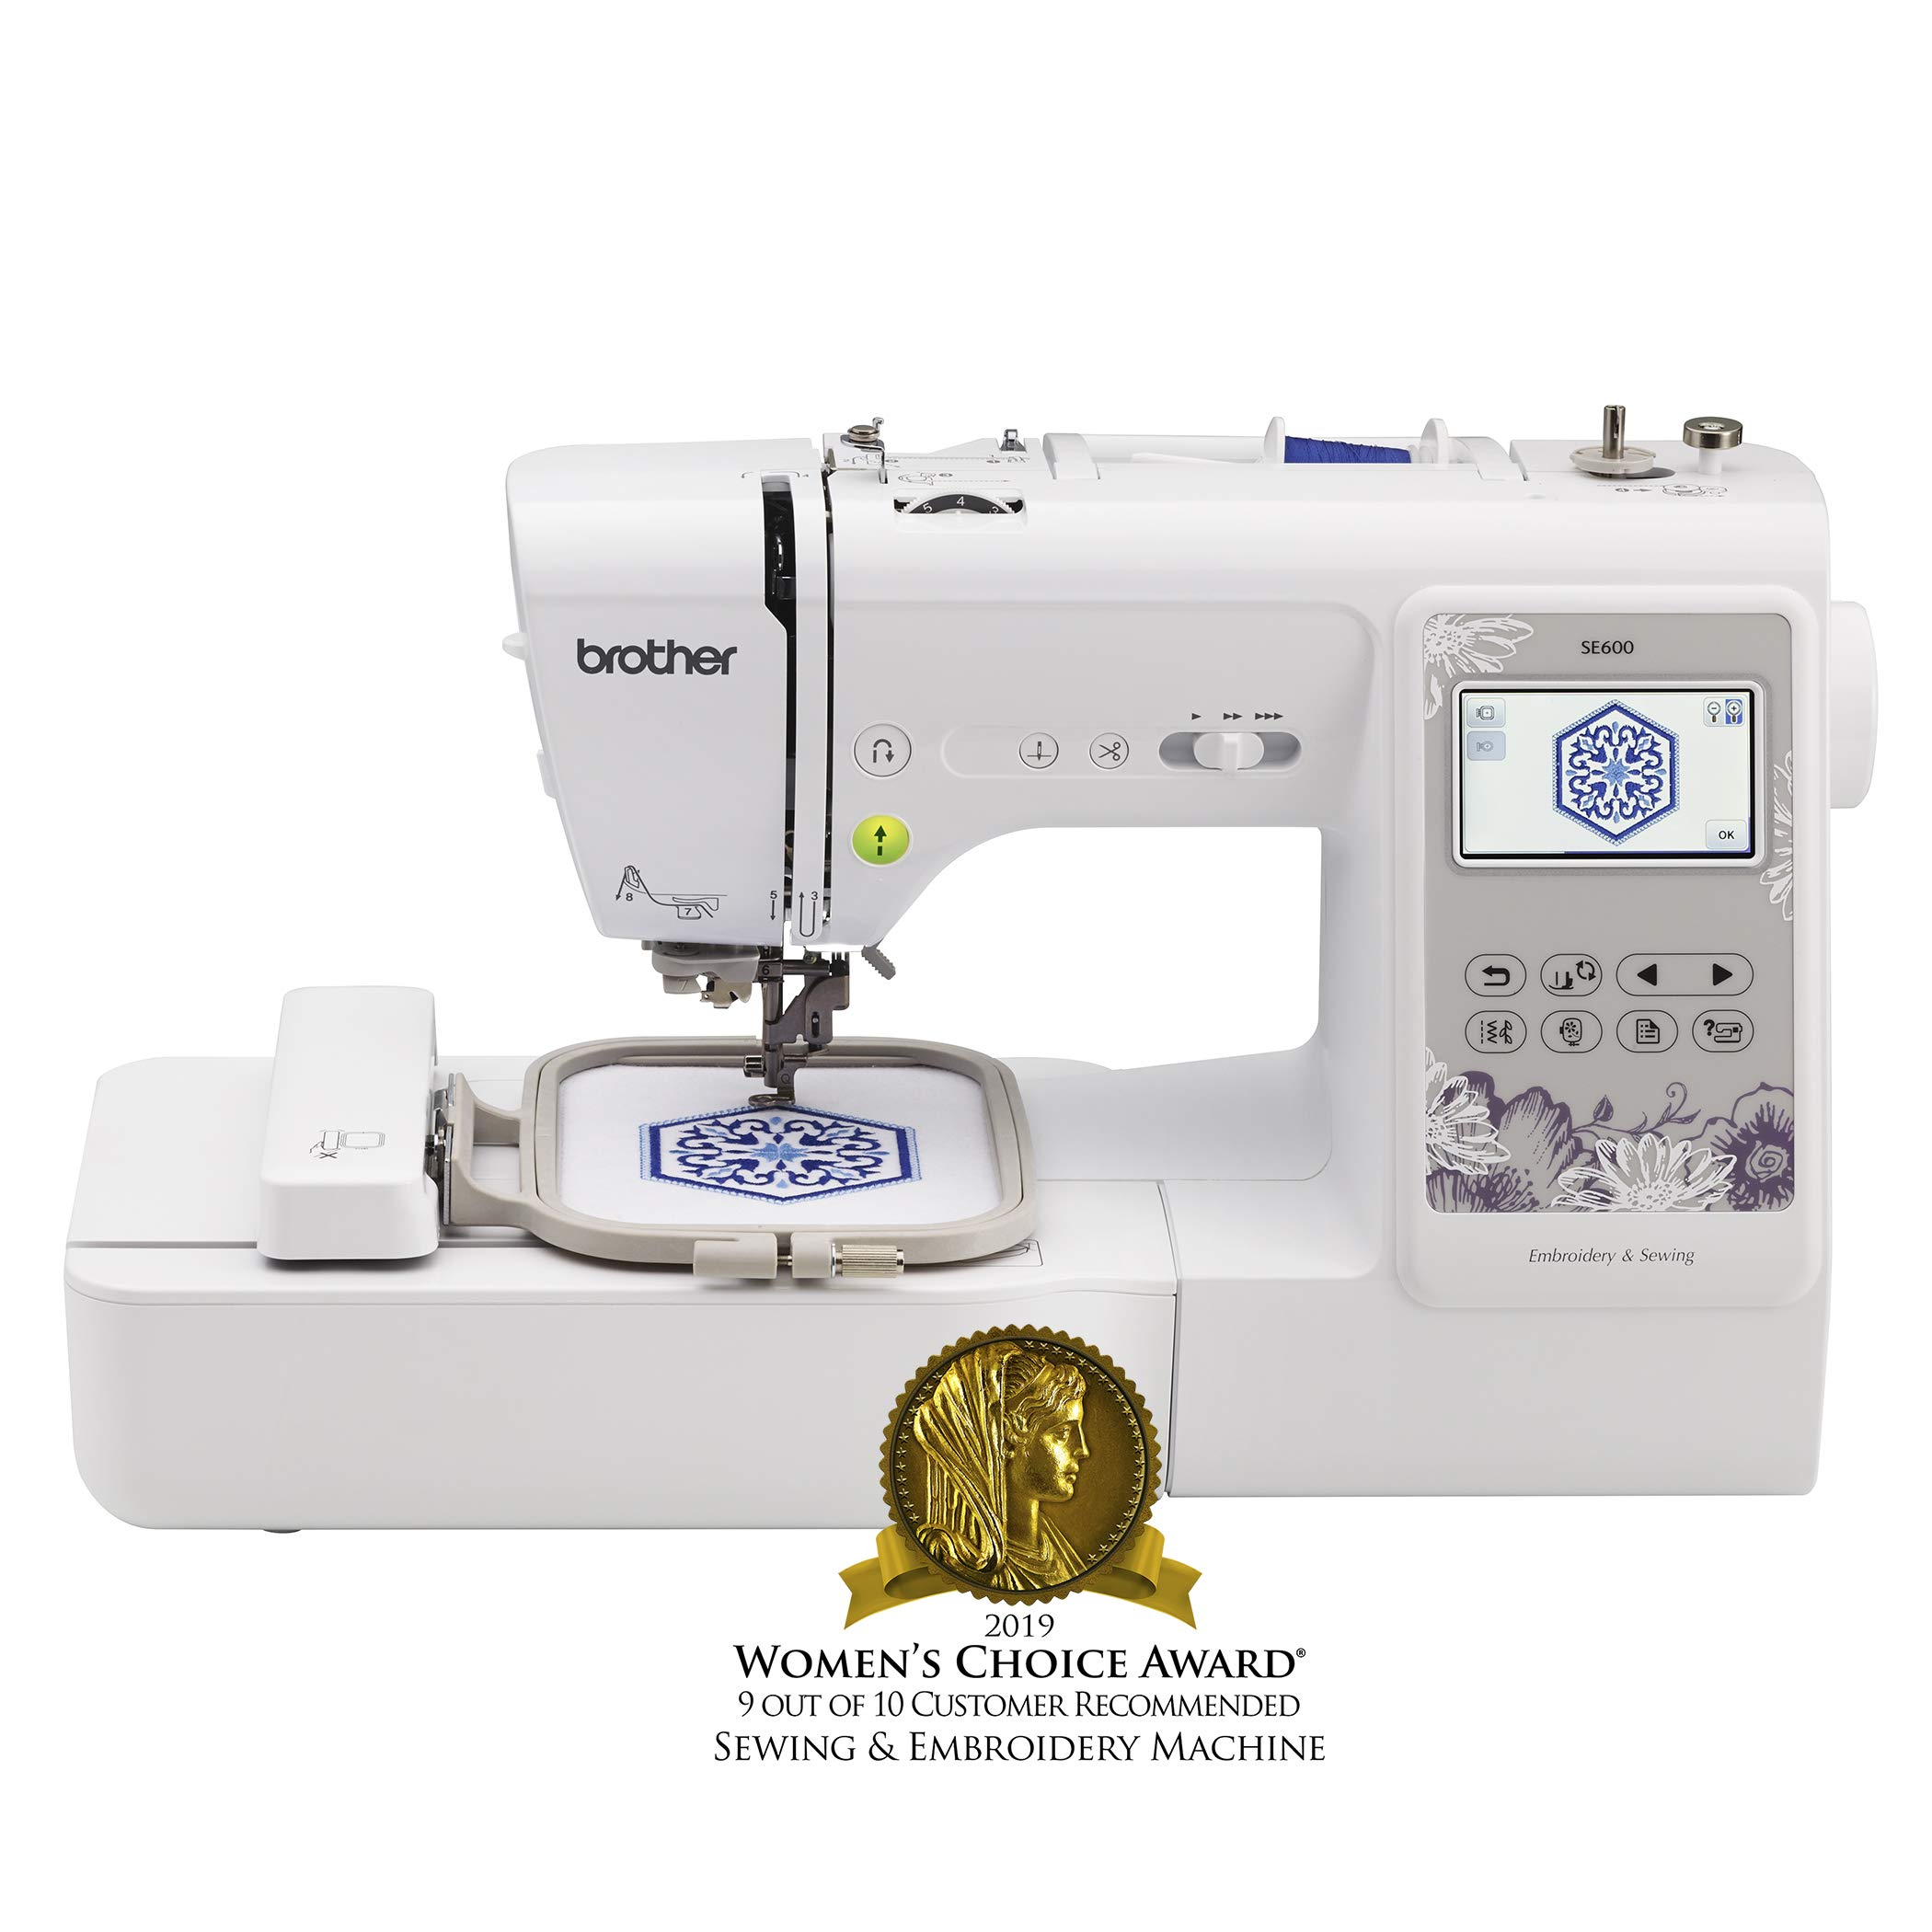 Brother Sewing Machine, SE600, Computerized Sewing and Embroidery Machine with 4'' x 4'' Embroidery Area, 80 Embroidery Designs, 103 Built-In Sewing Stitches, White by Brother